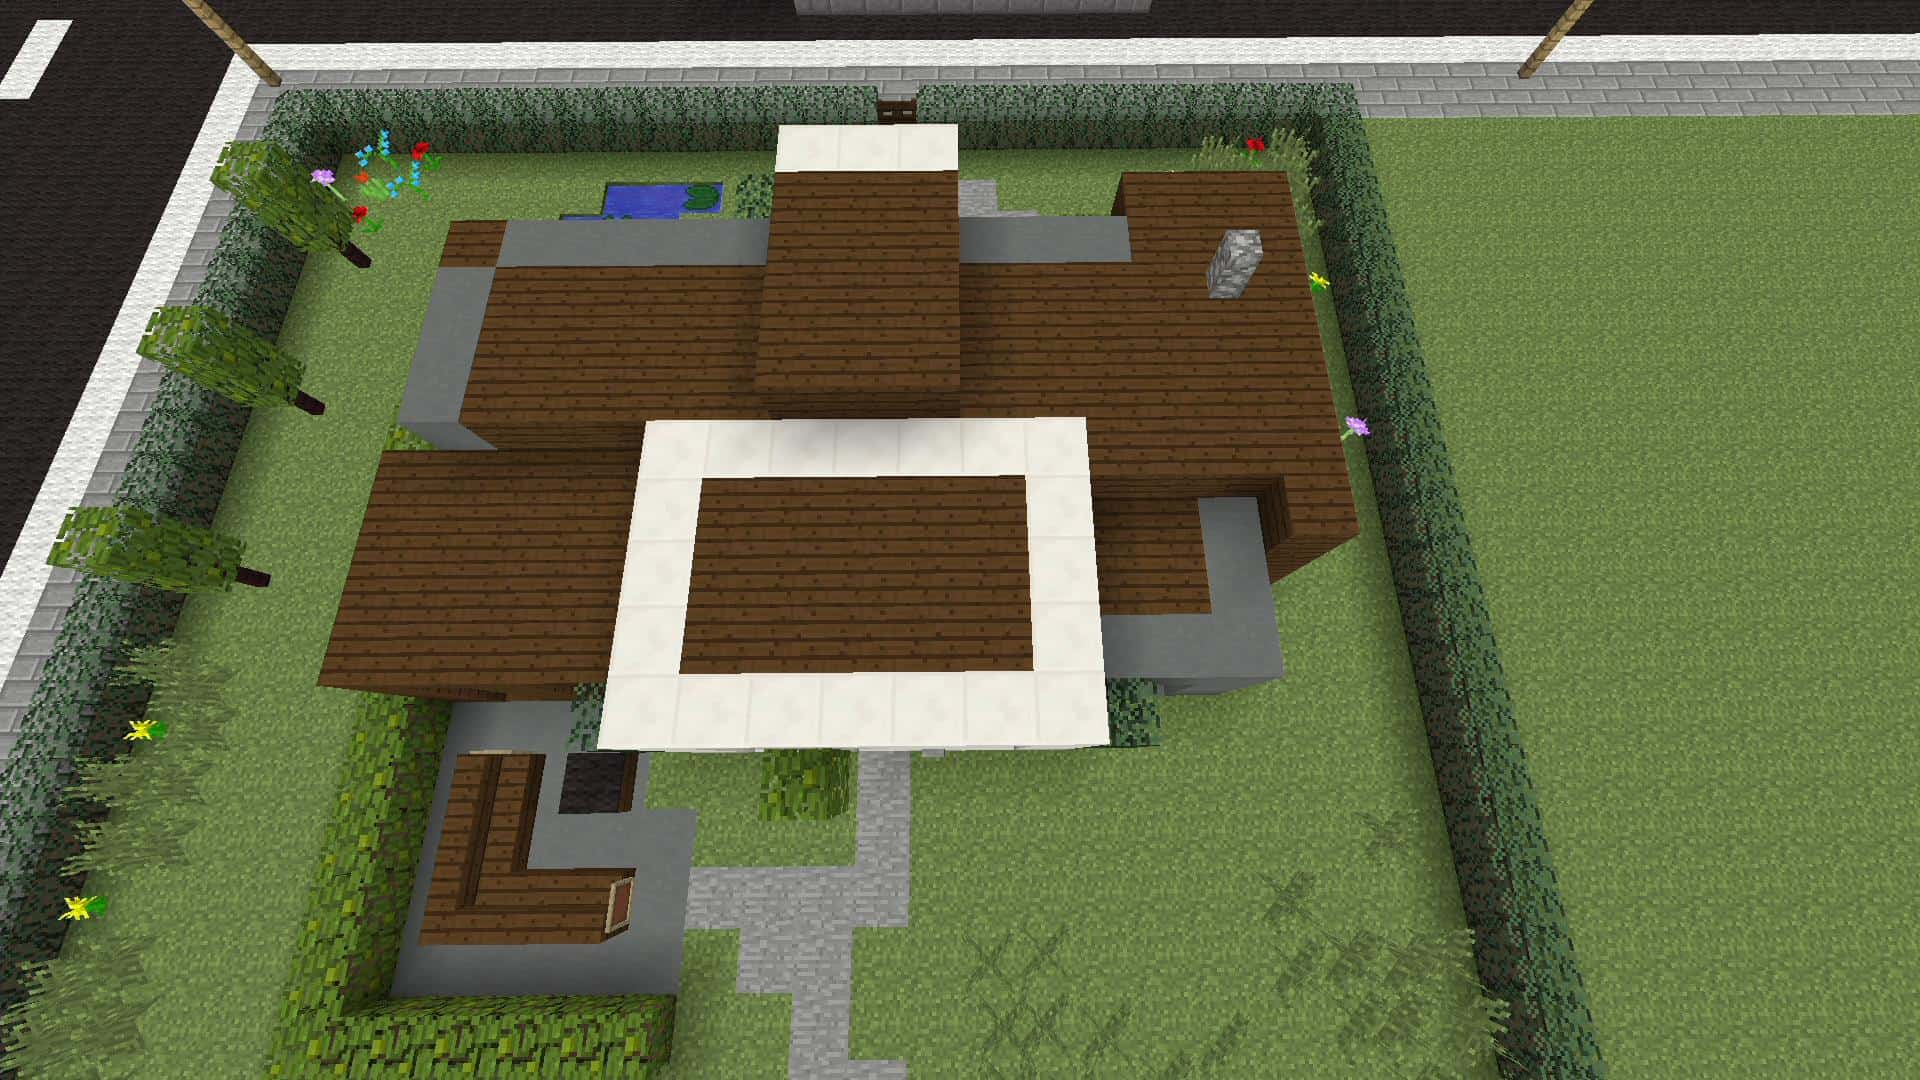 simple modern houses minecraft. download minecraft how to make a simple modern house xbox one houses